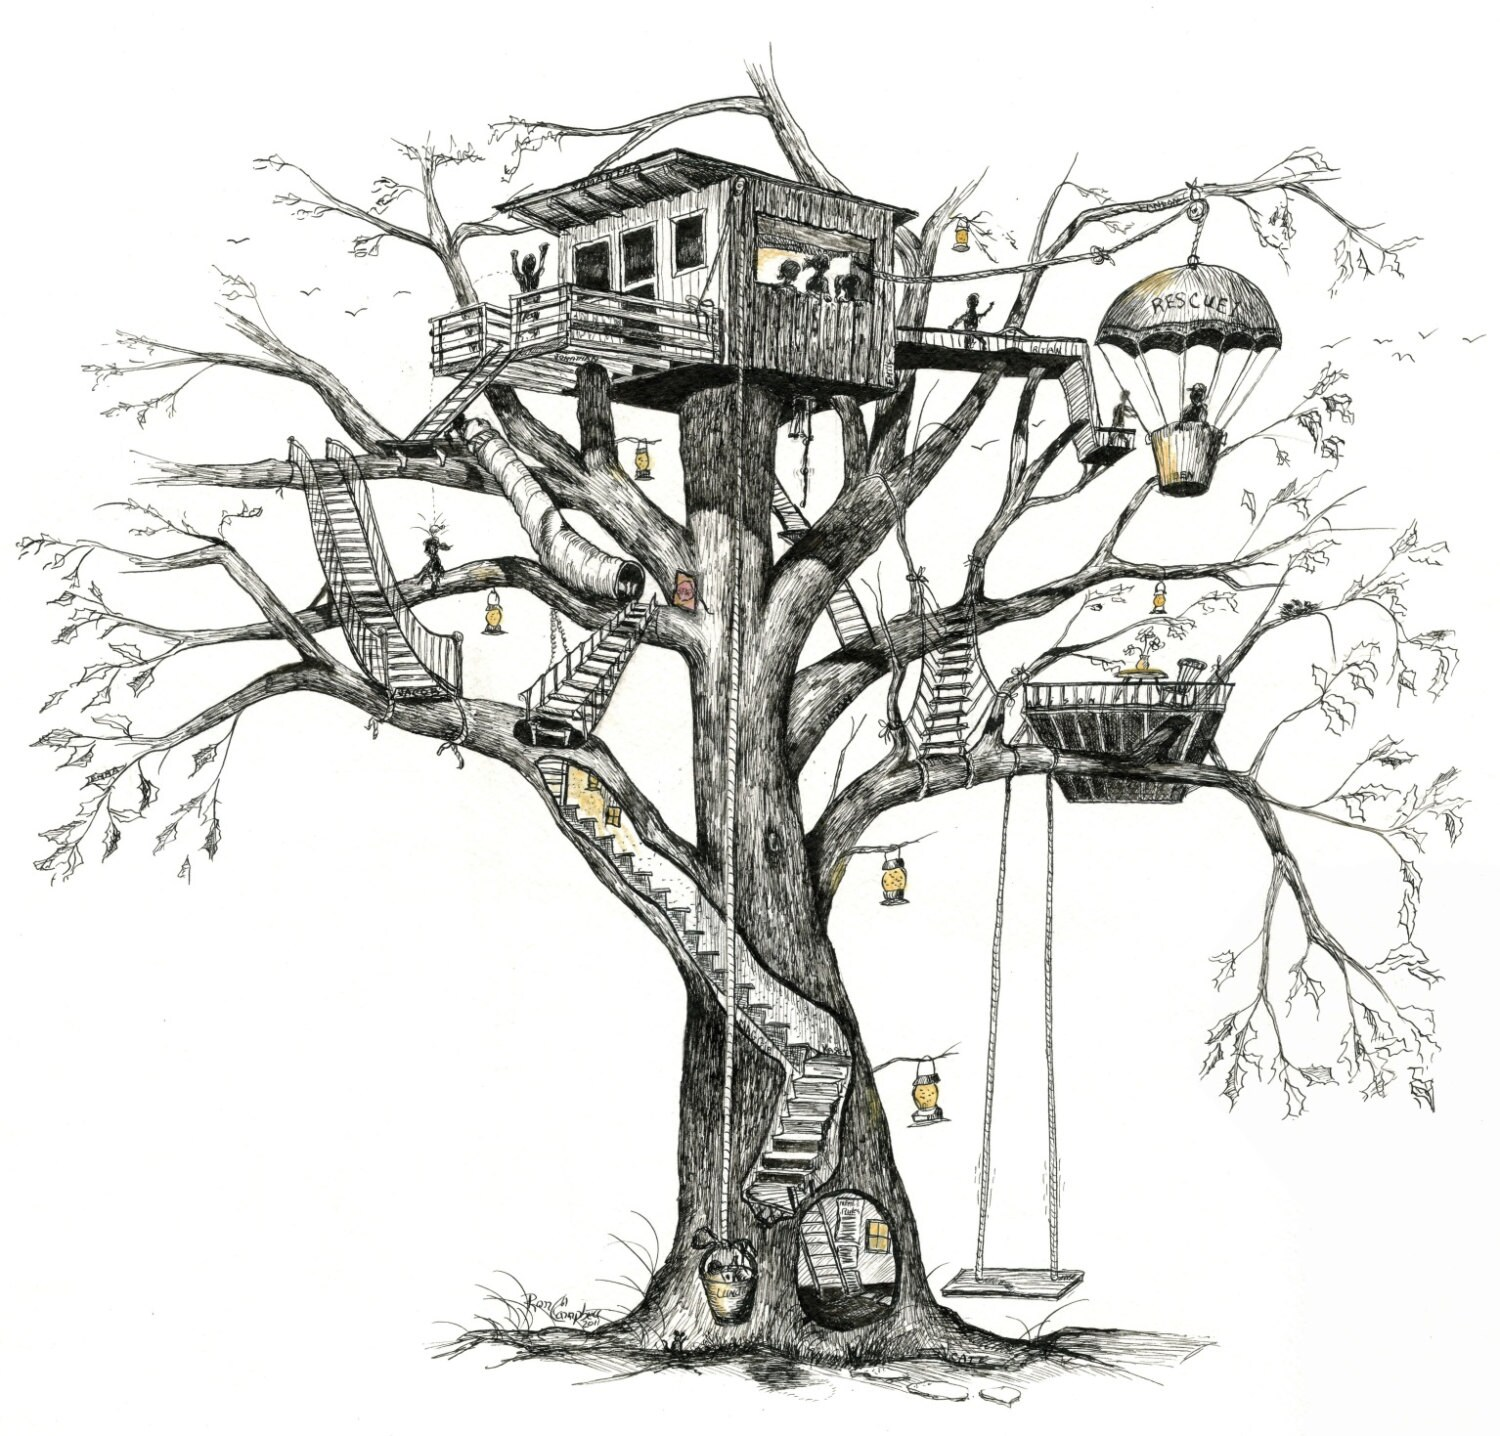 Treehouse Tree House Whimsy Fireflies Pen Amp Ink And